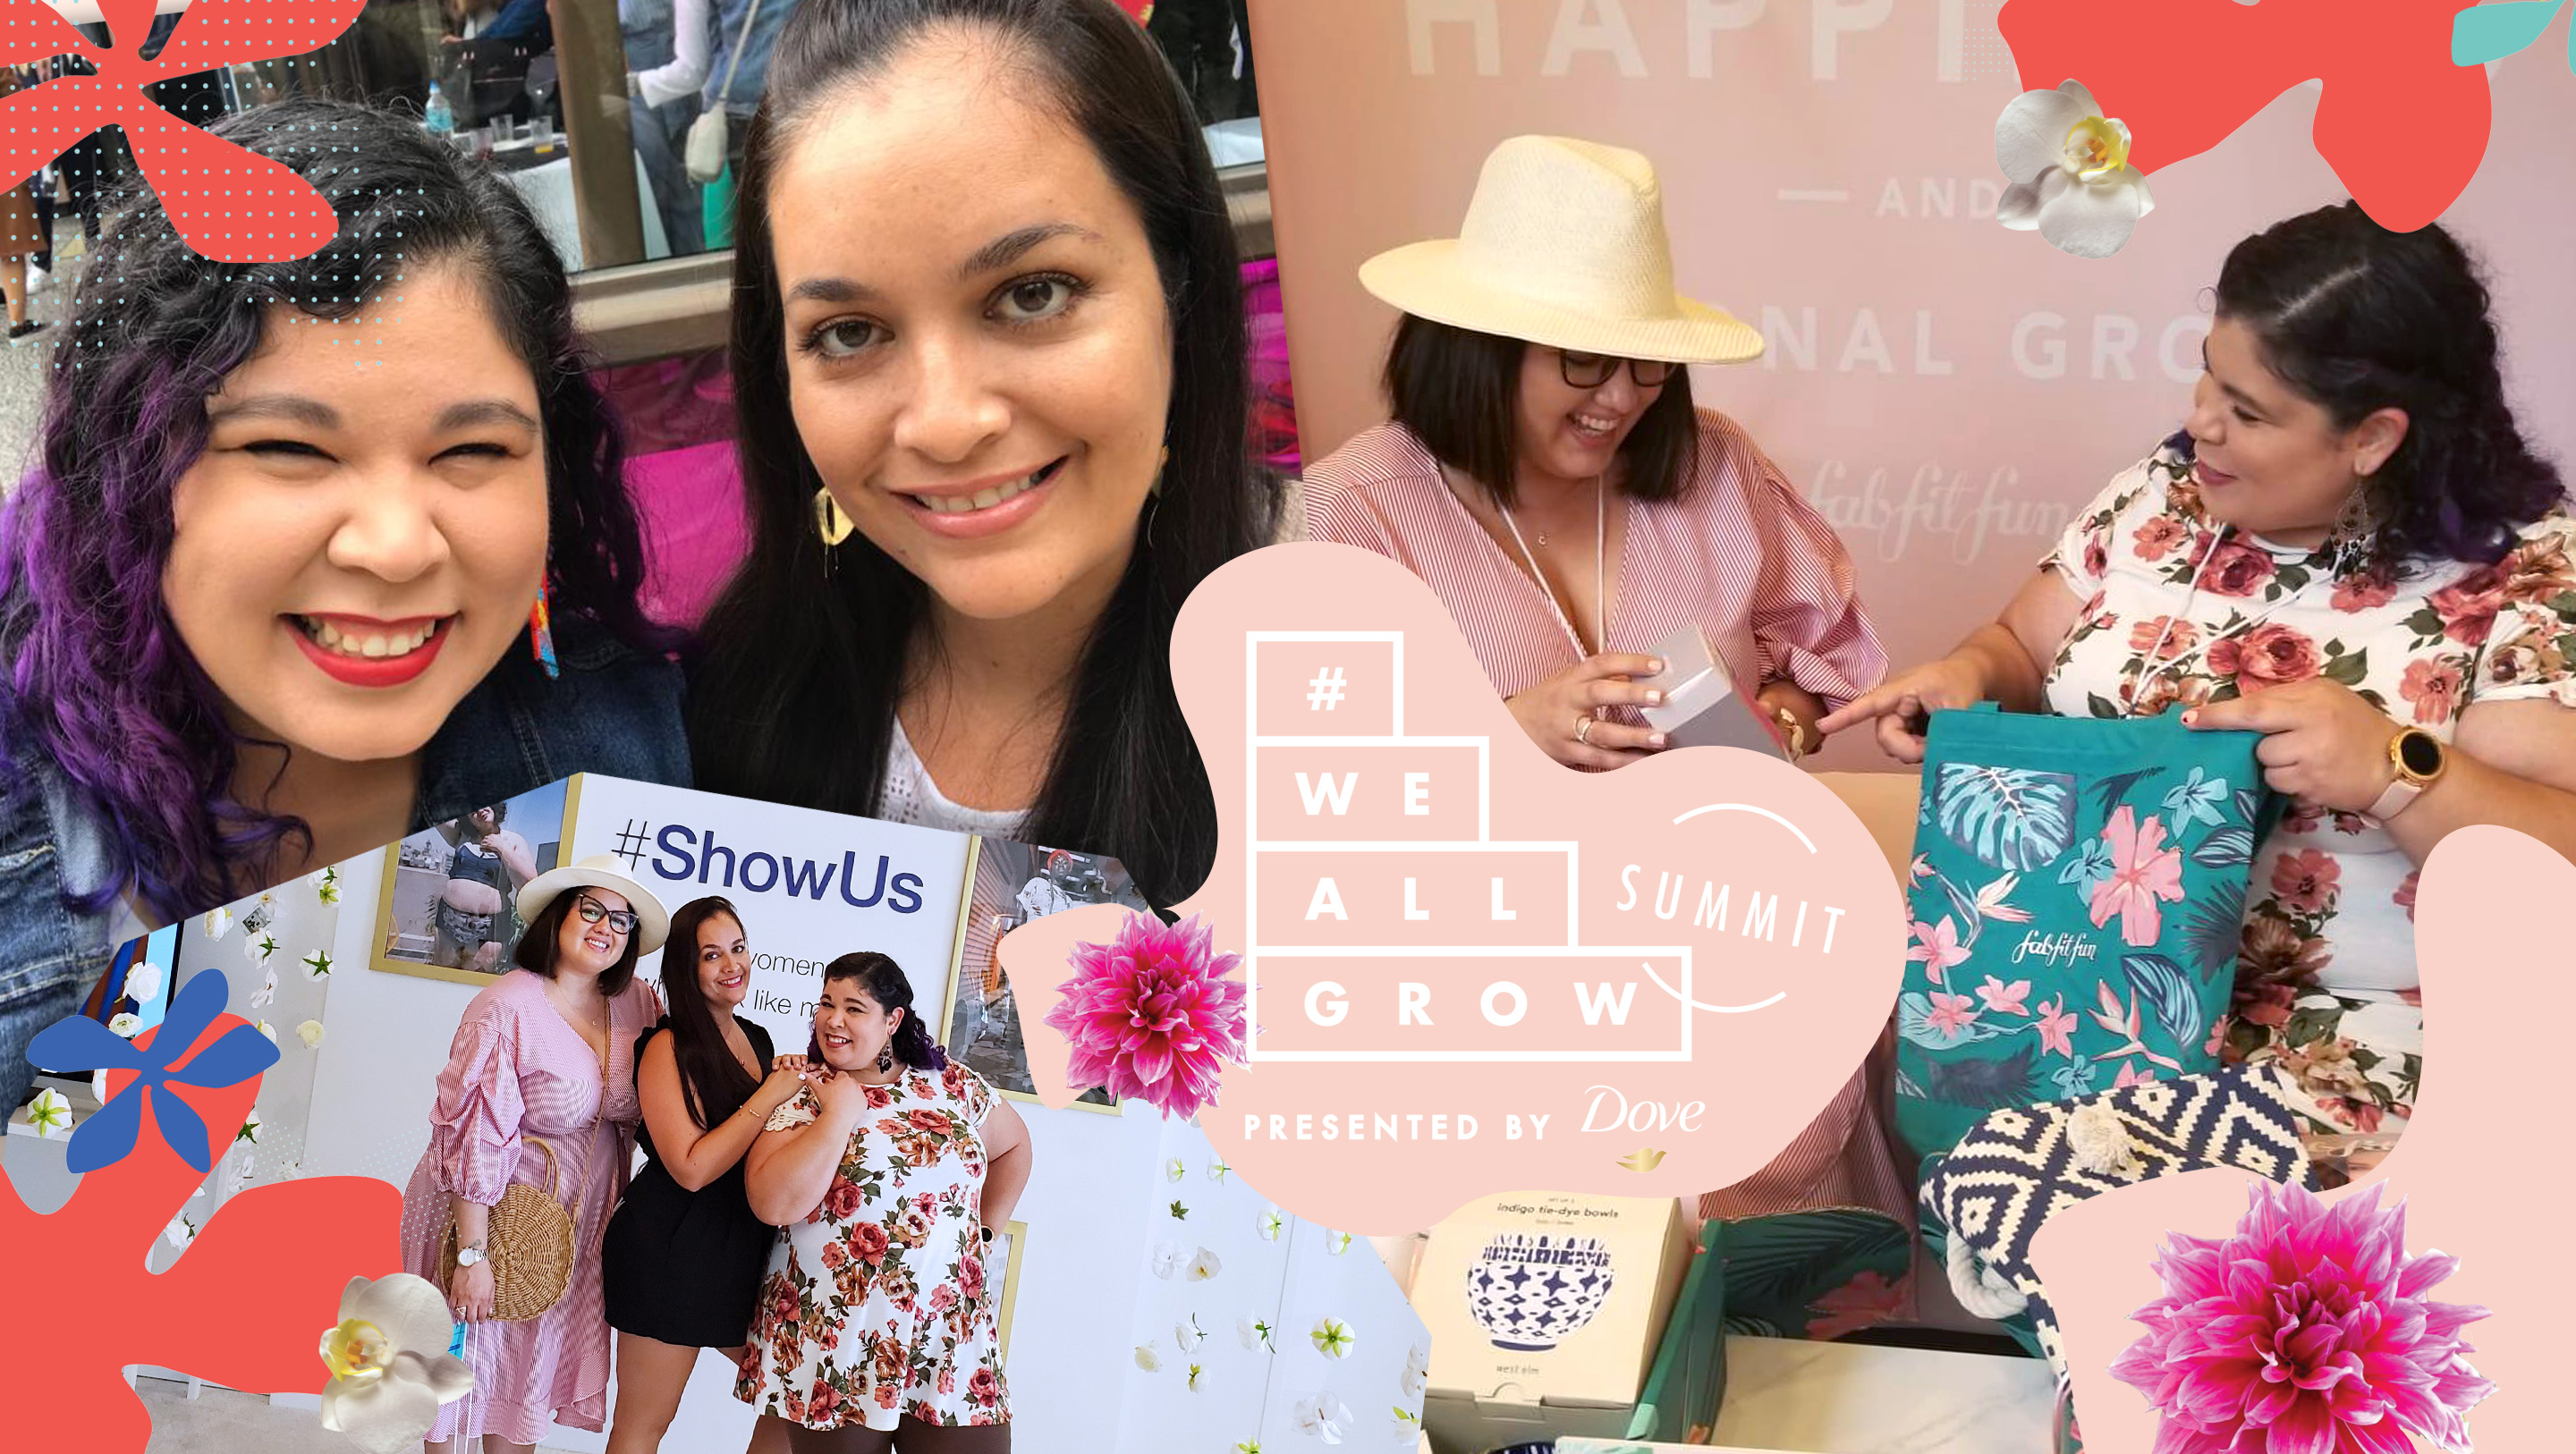 Weallgrow Latina 2019